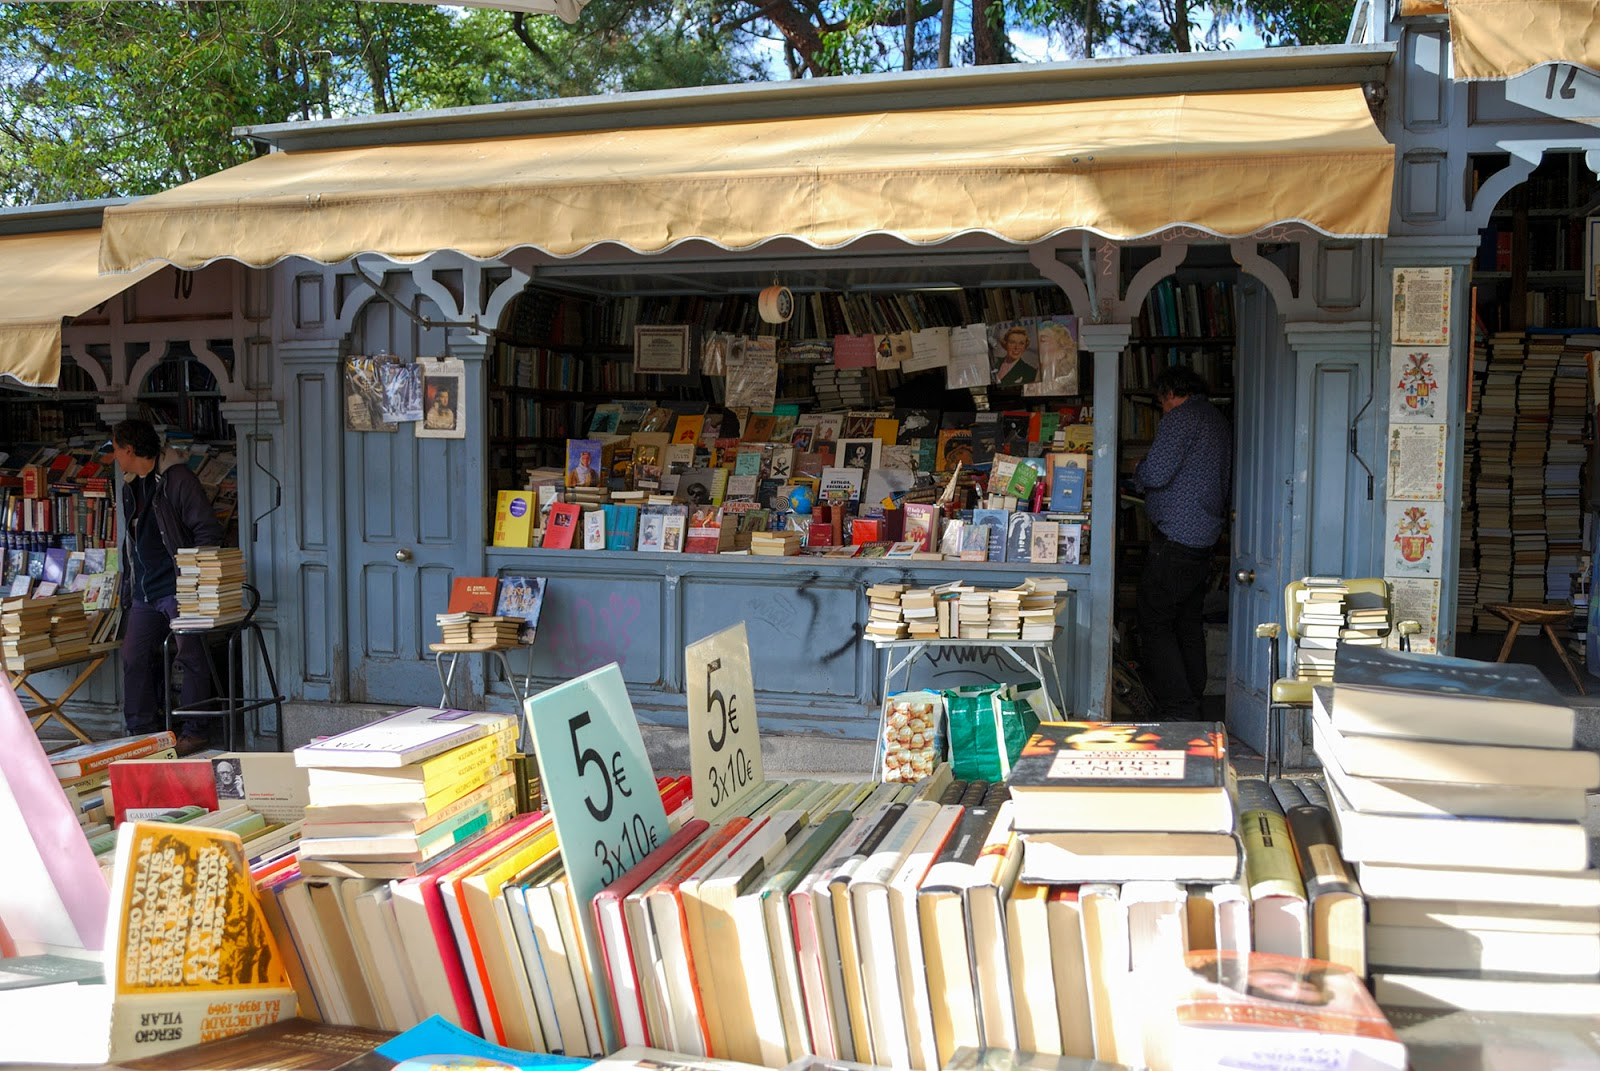 book fair market cuesta moyano madrid spain europe best beautiful bookshop cool bookstore